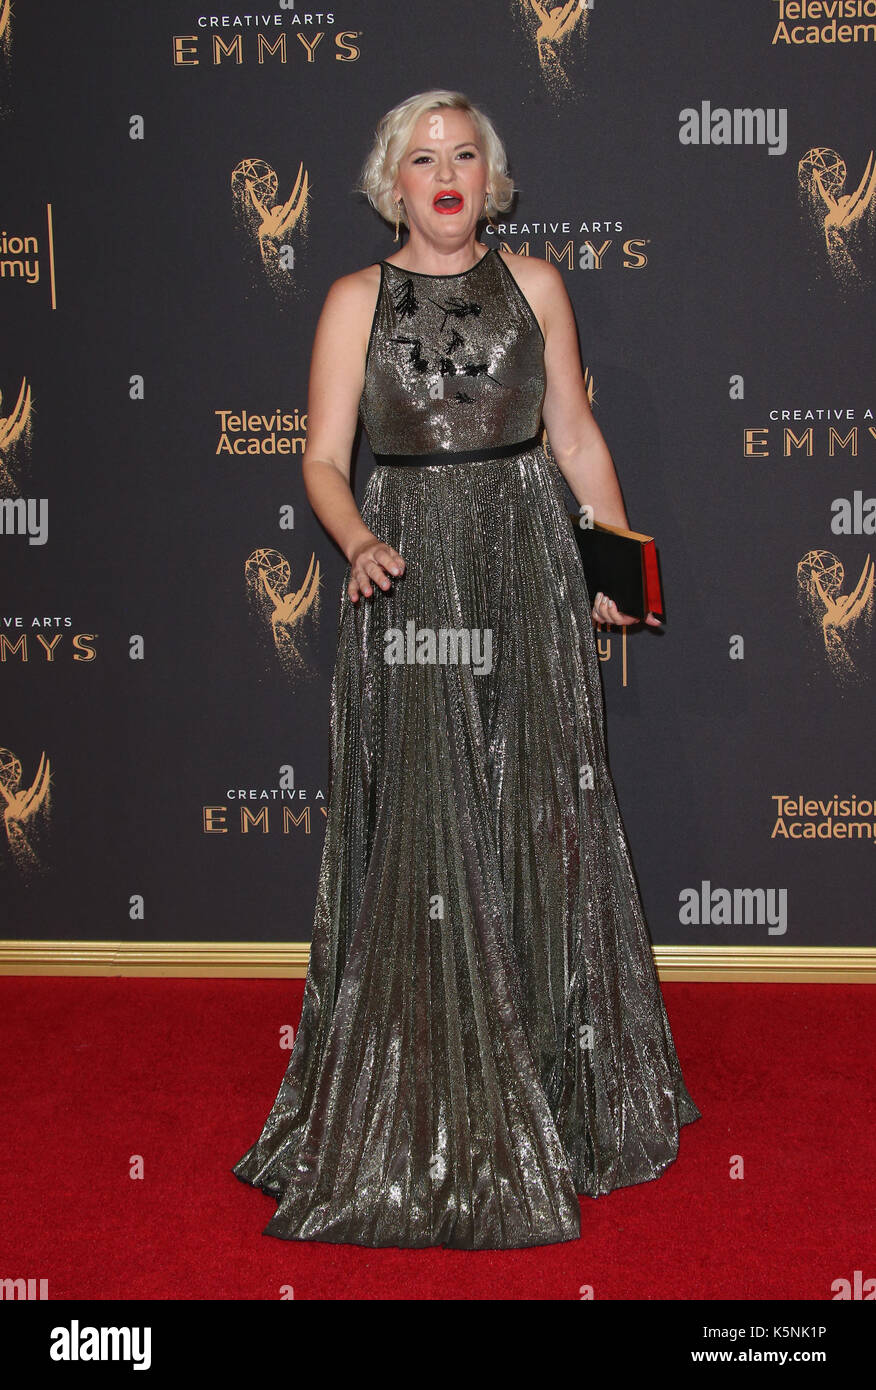 Kimmy gatewood creative arts emmy awards in los angeles new images